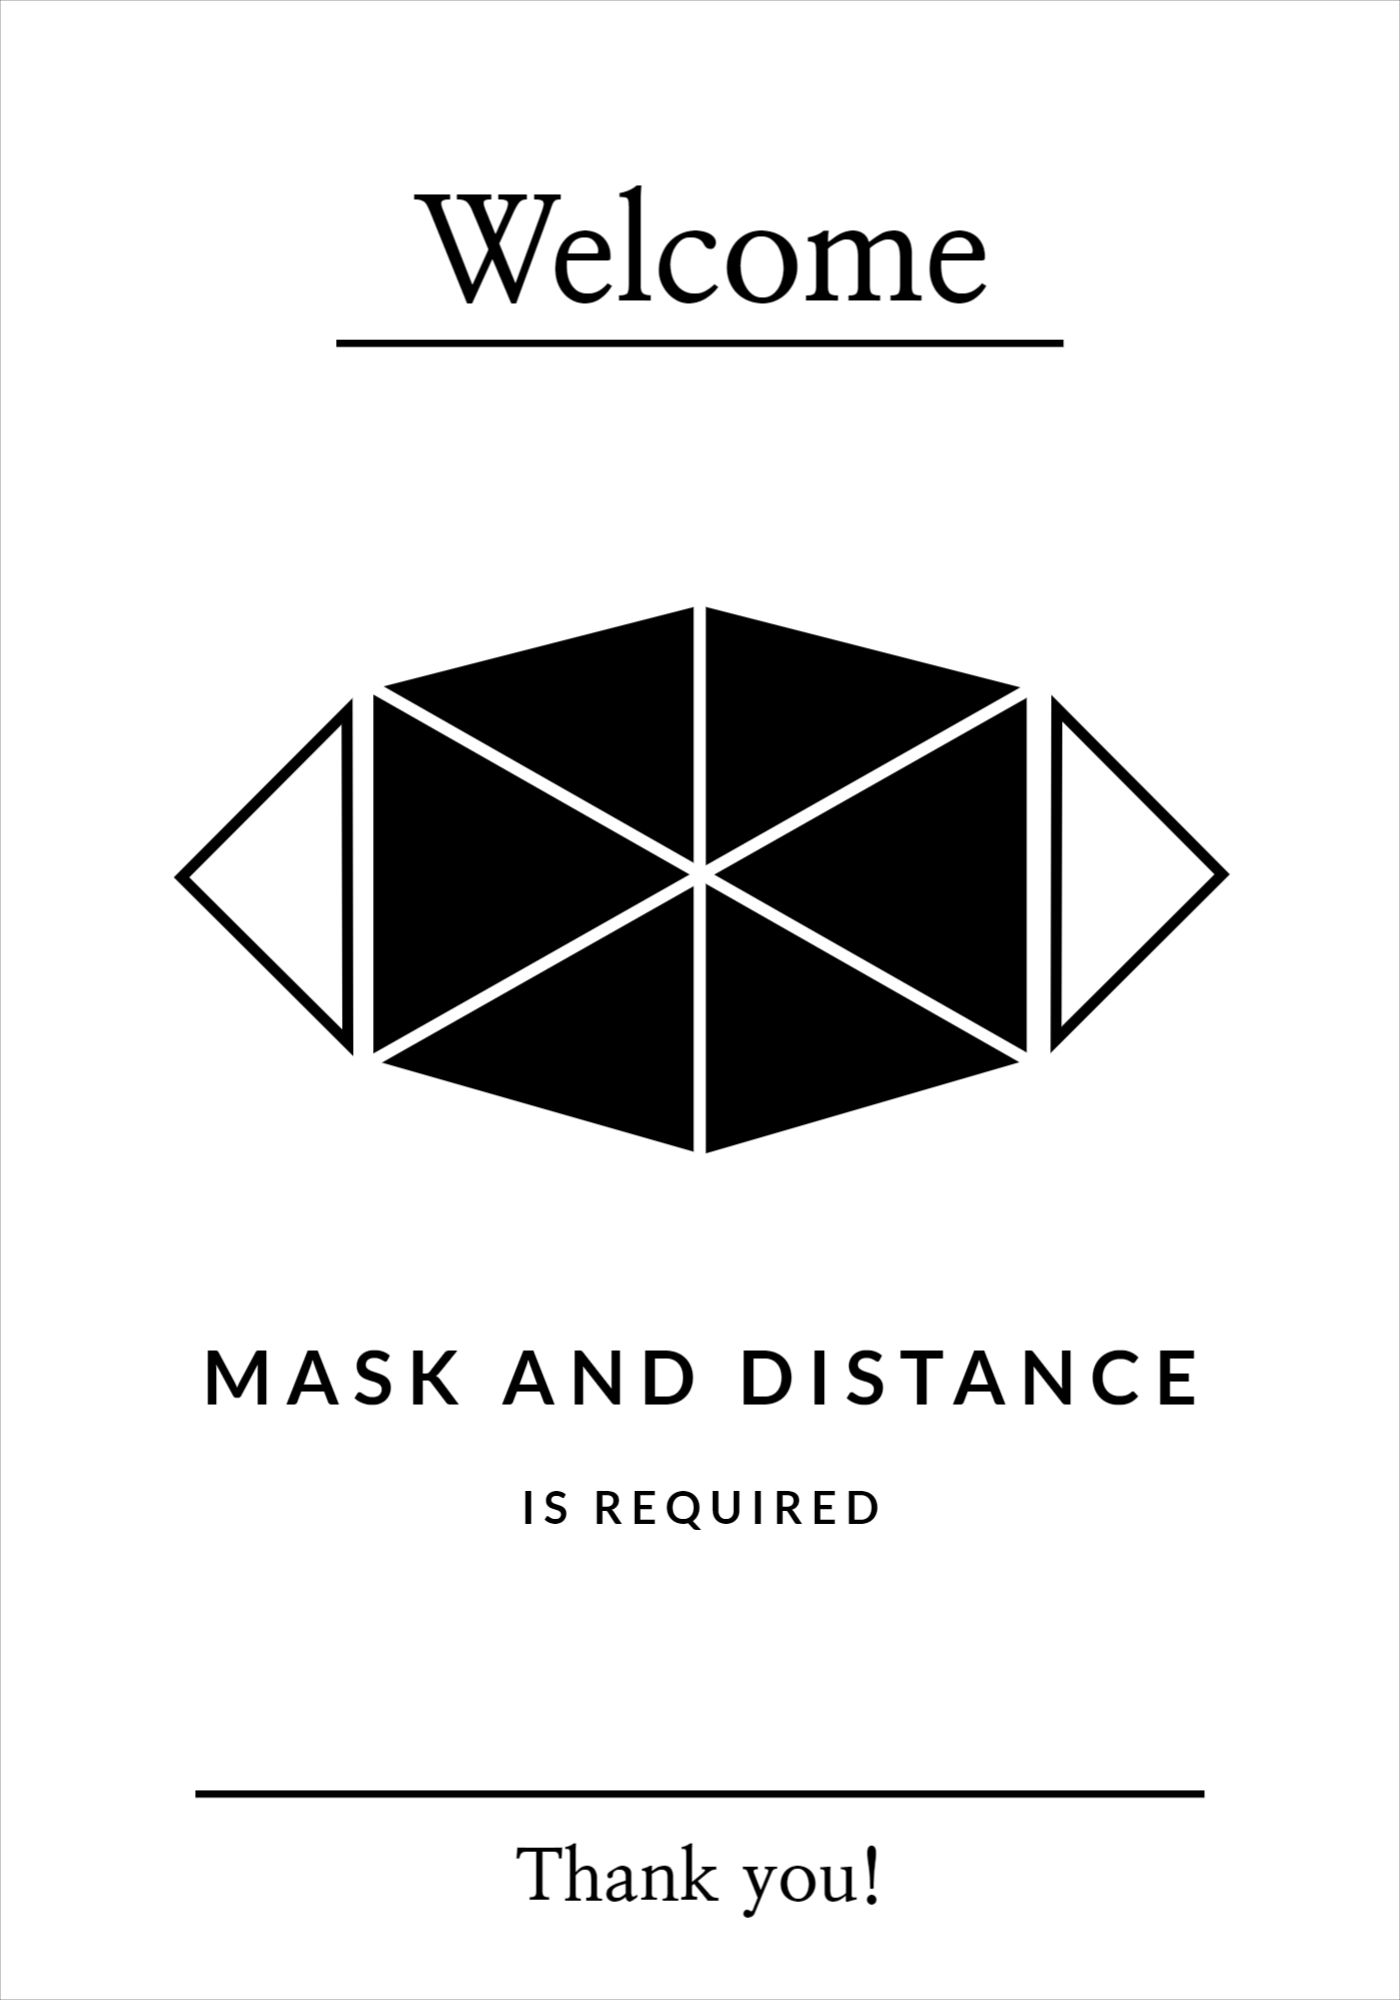 Solid and Polygon Mask Covid Poster Template